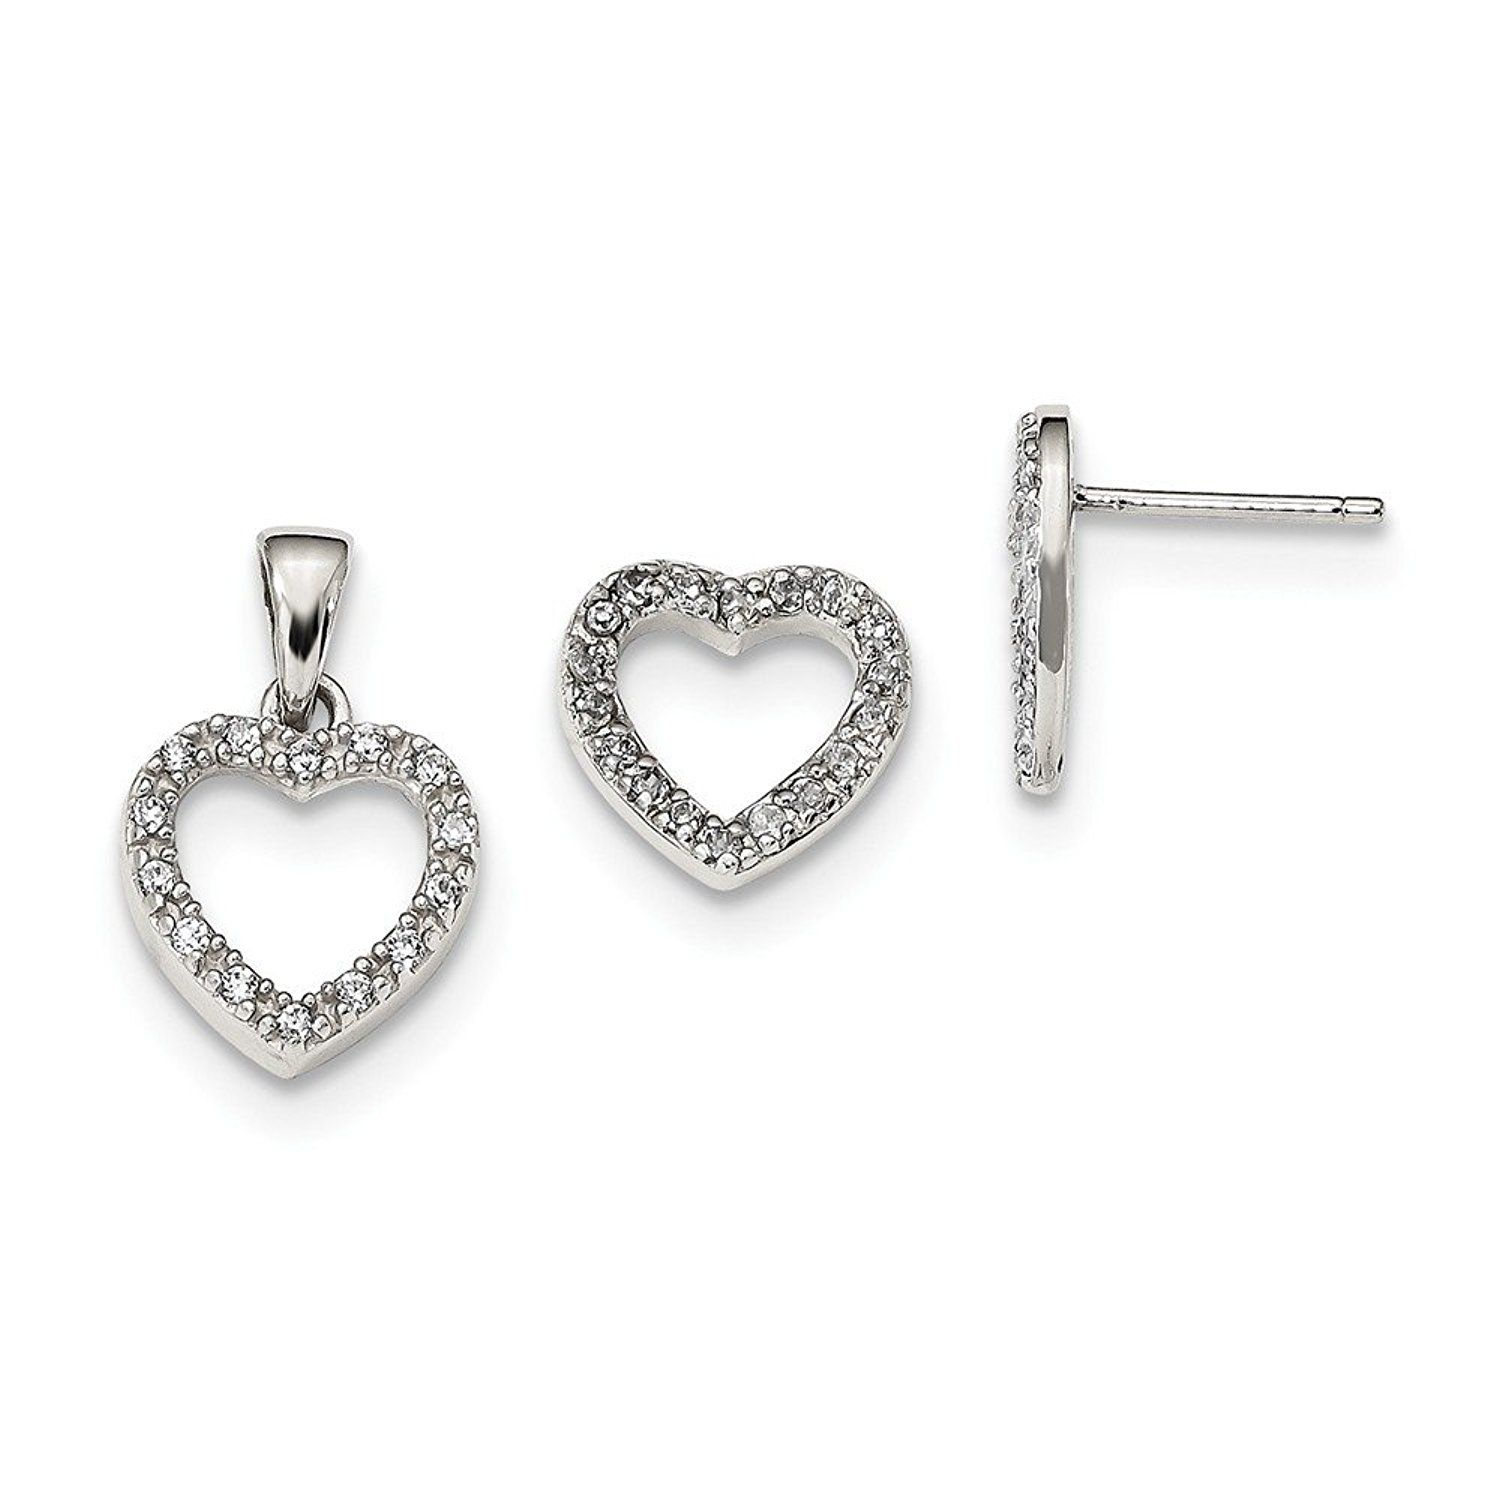 Sterling silver cz heart pendant and earring set details can be